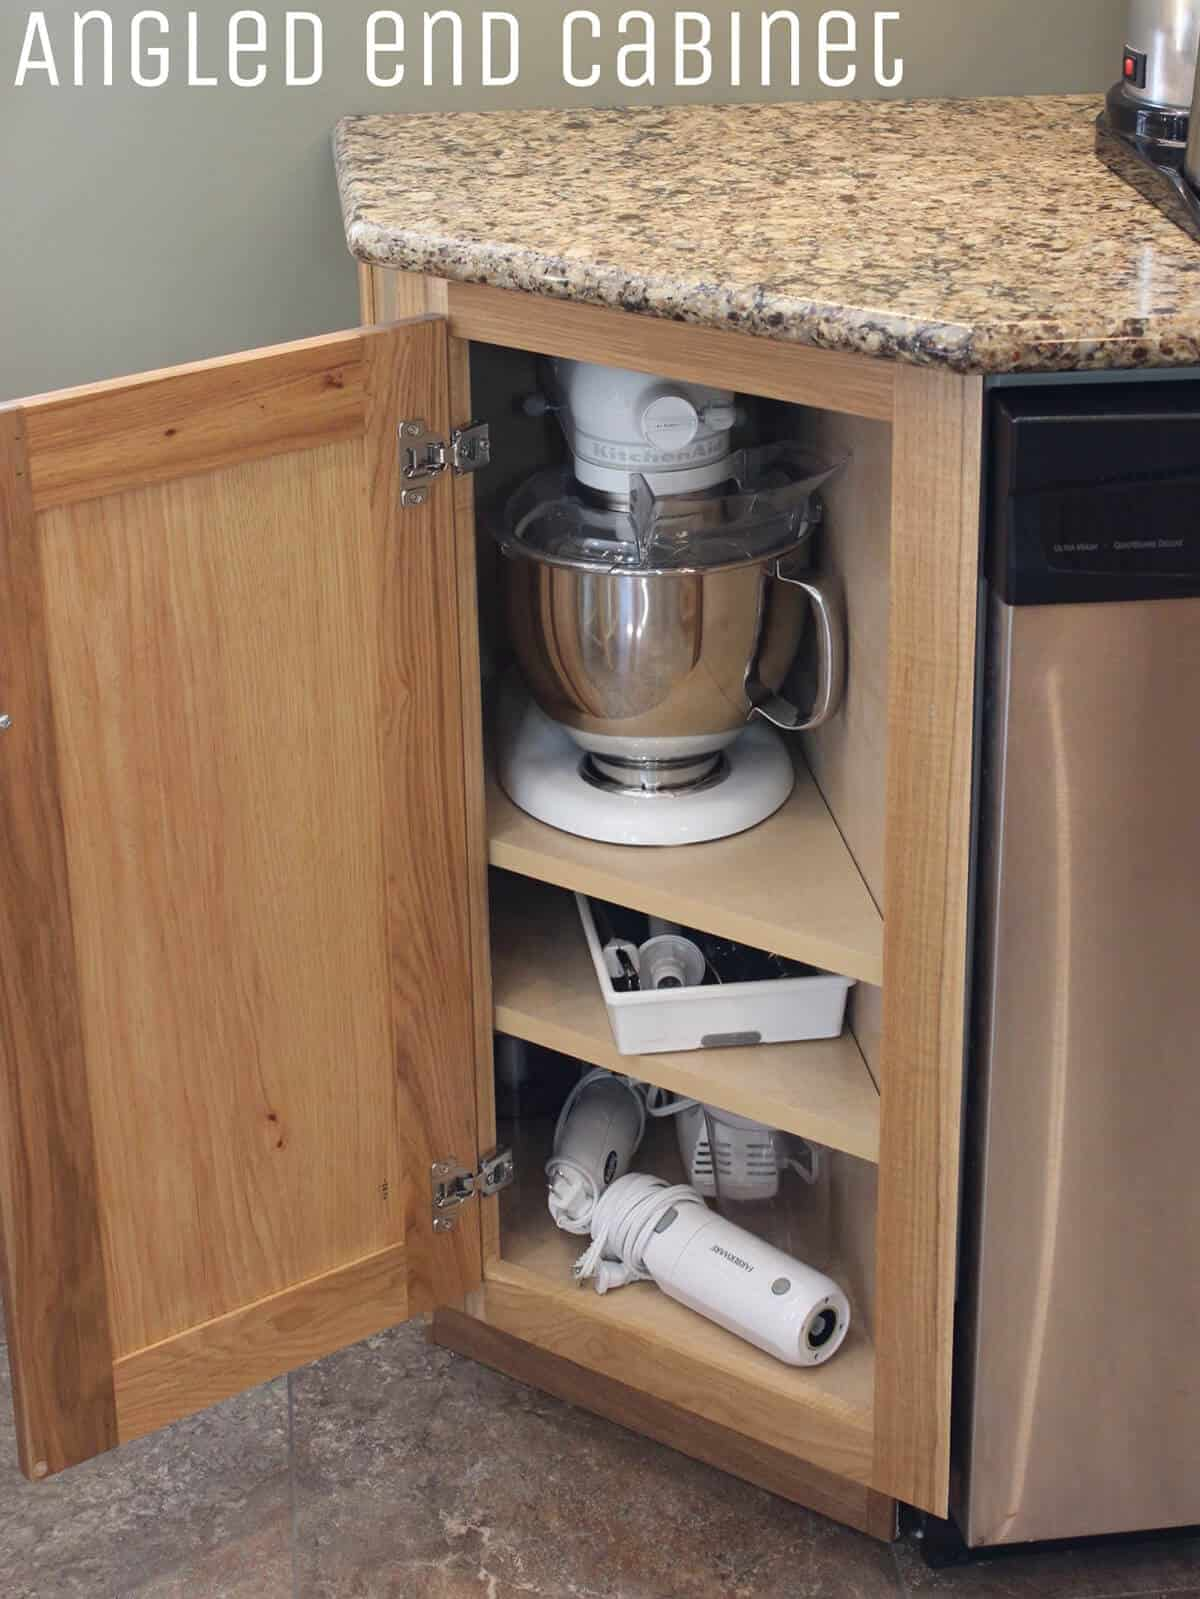 Here's an example of kitchen cabinet storage placed in an outward angled corner